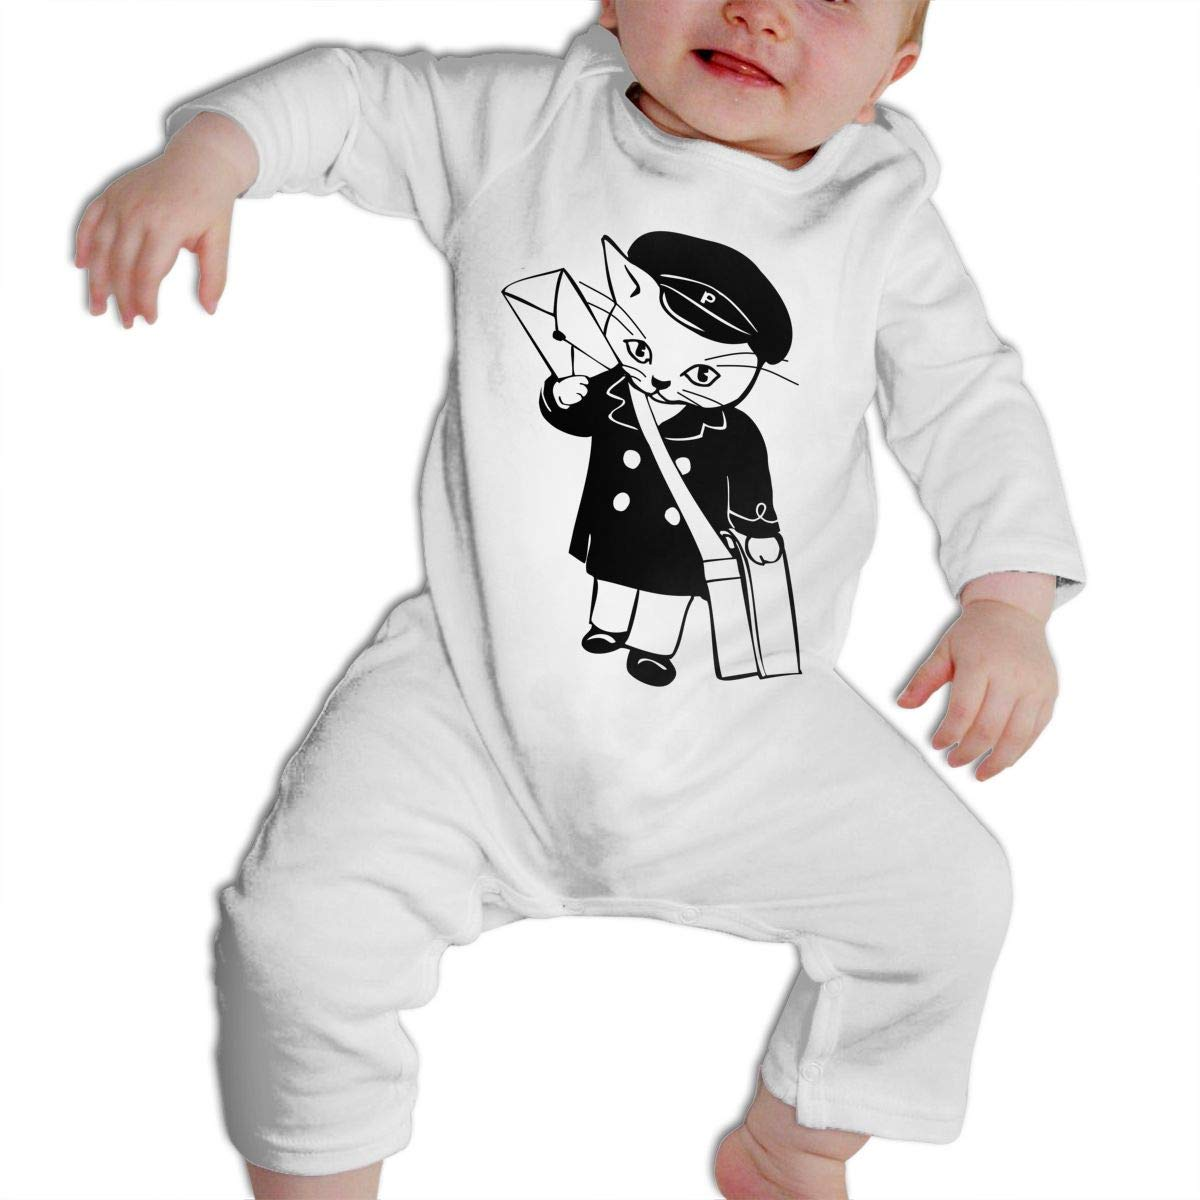 6ed8d079e58f Amazon.com  SARA NELL Baby Boys   Girls Bodysuit Postman Cat ...